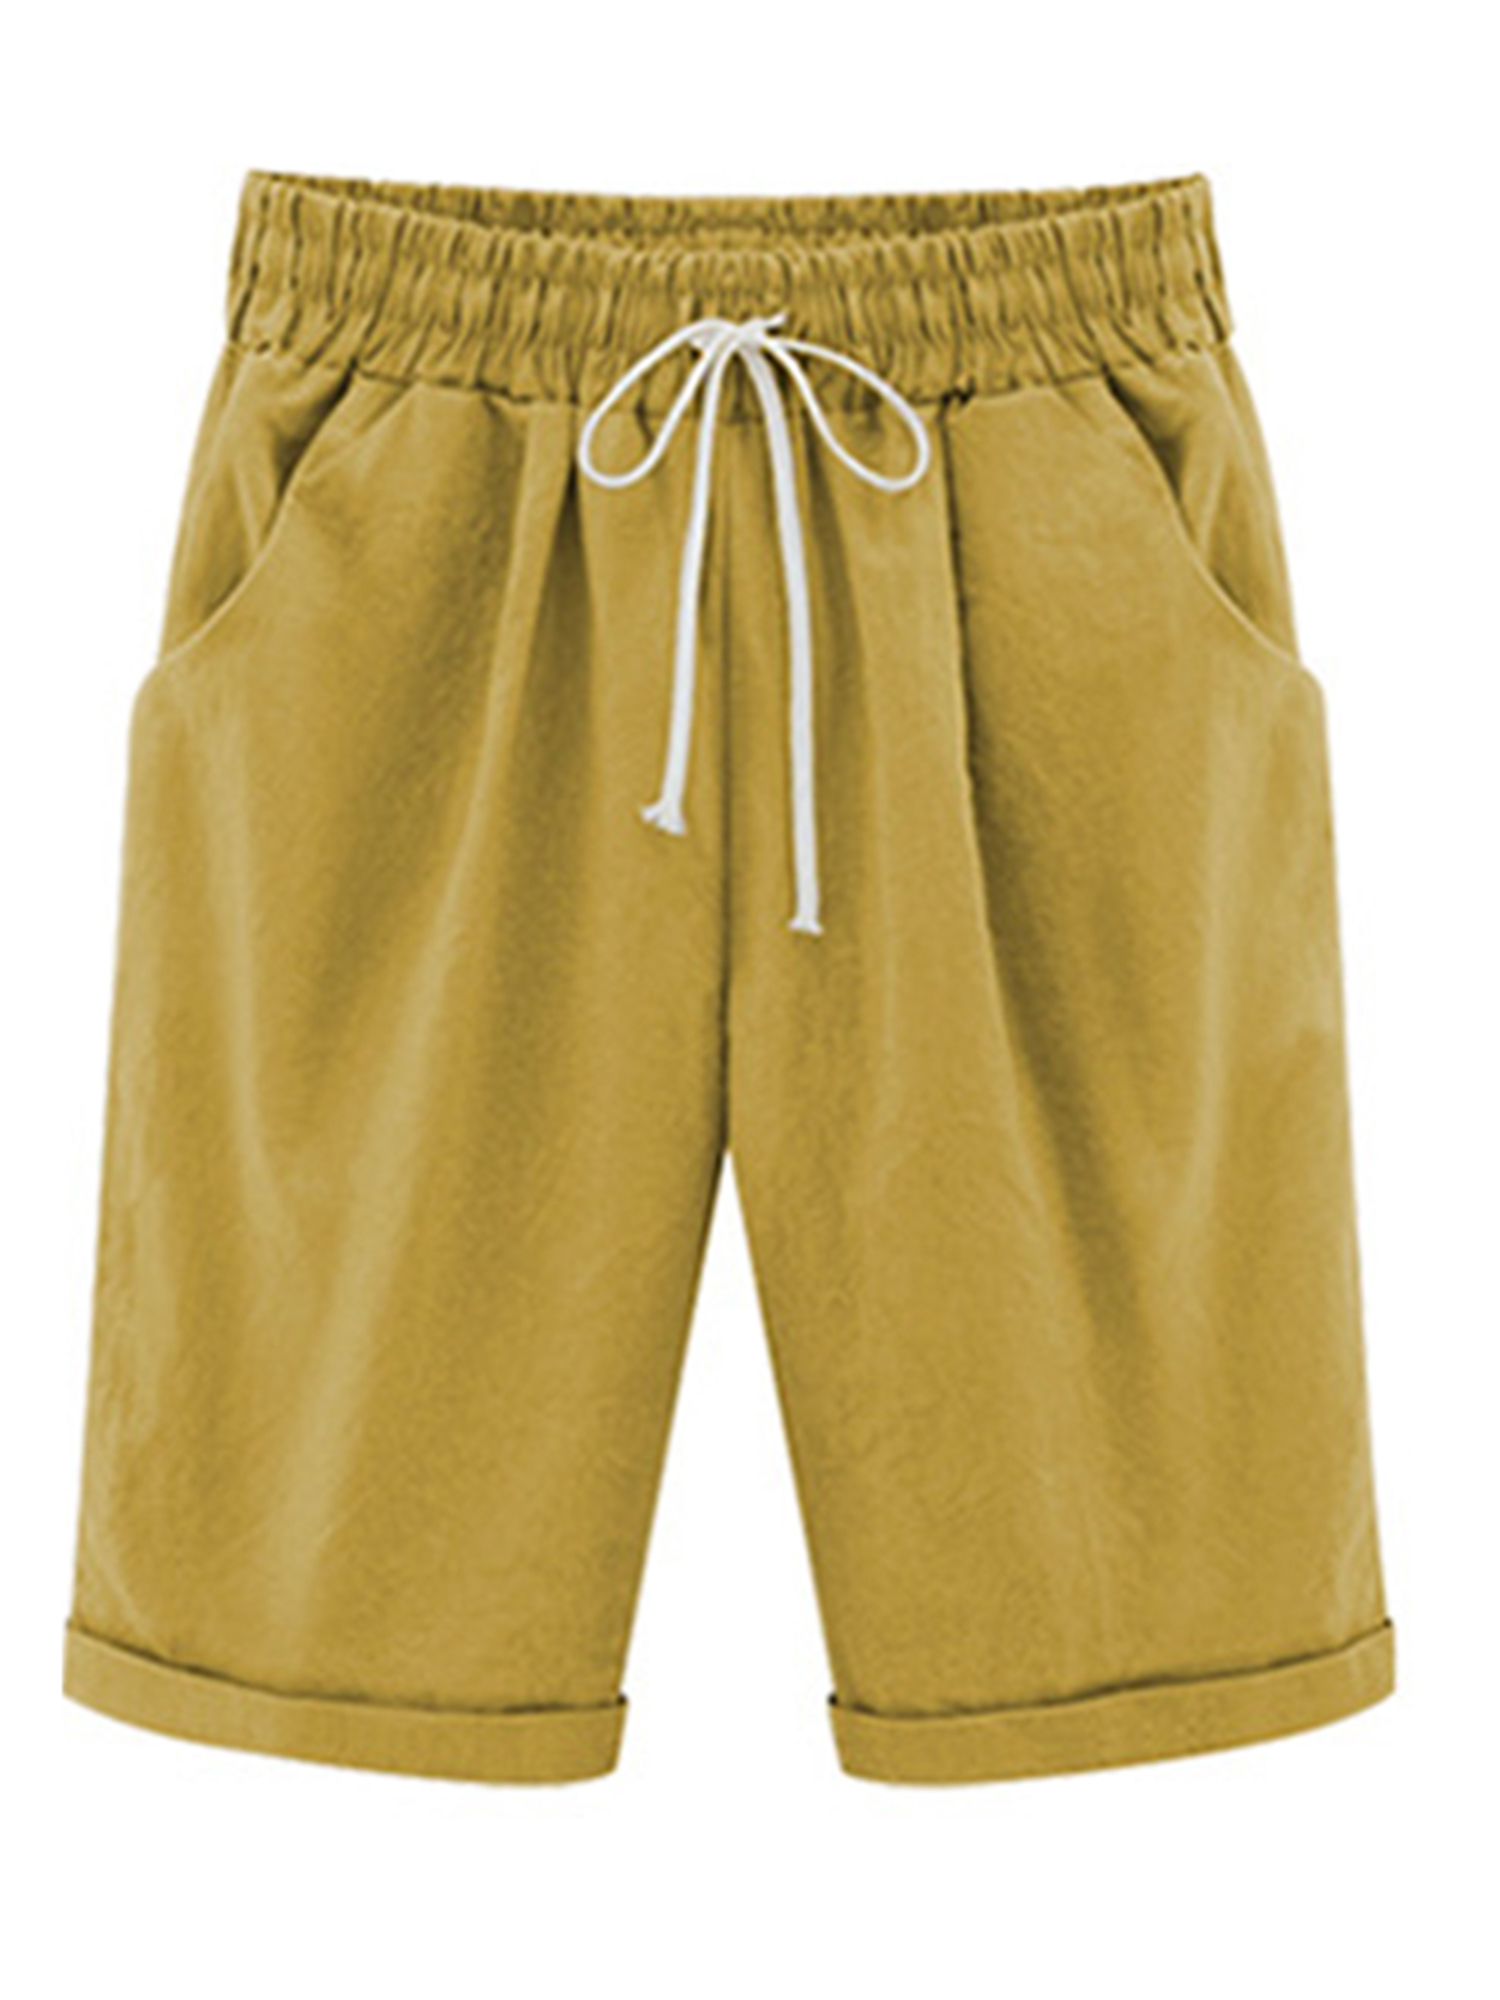 Funic Womens Plus Size Pants Mid Waist Lace Hot Shorts Elastic Sports Trousers Trunks